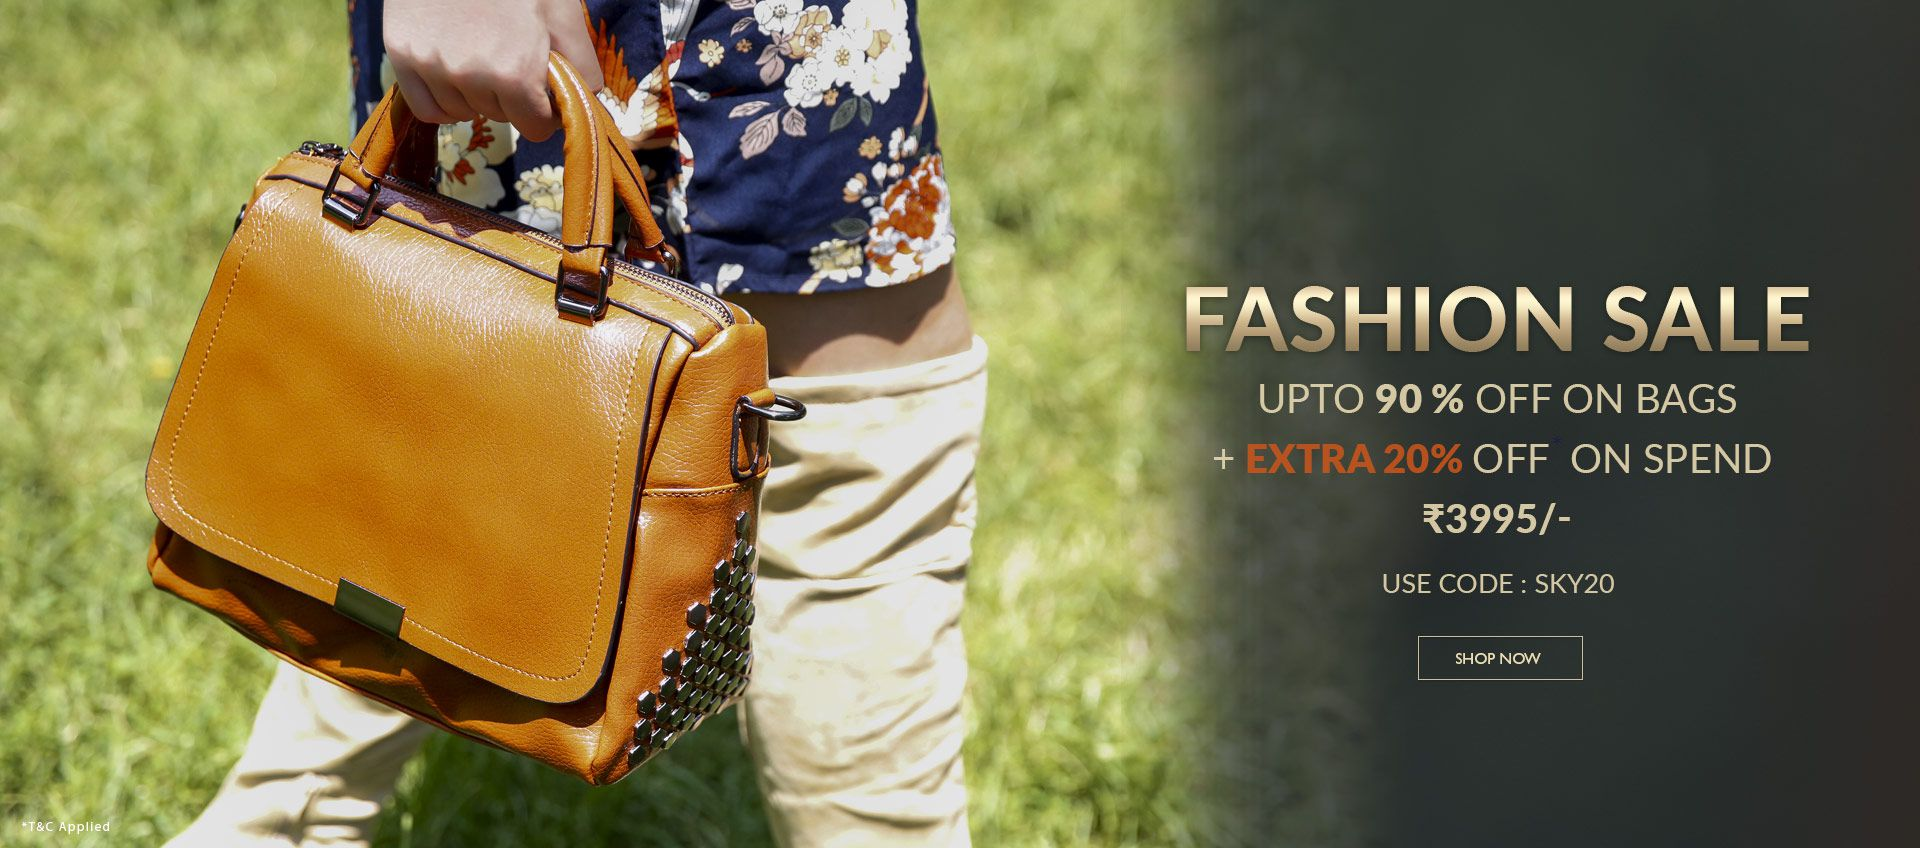 FASHION SALE UPTO 90% OFF ON BAGS